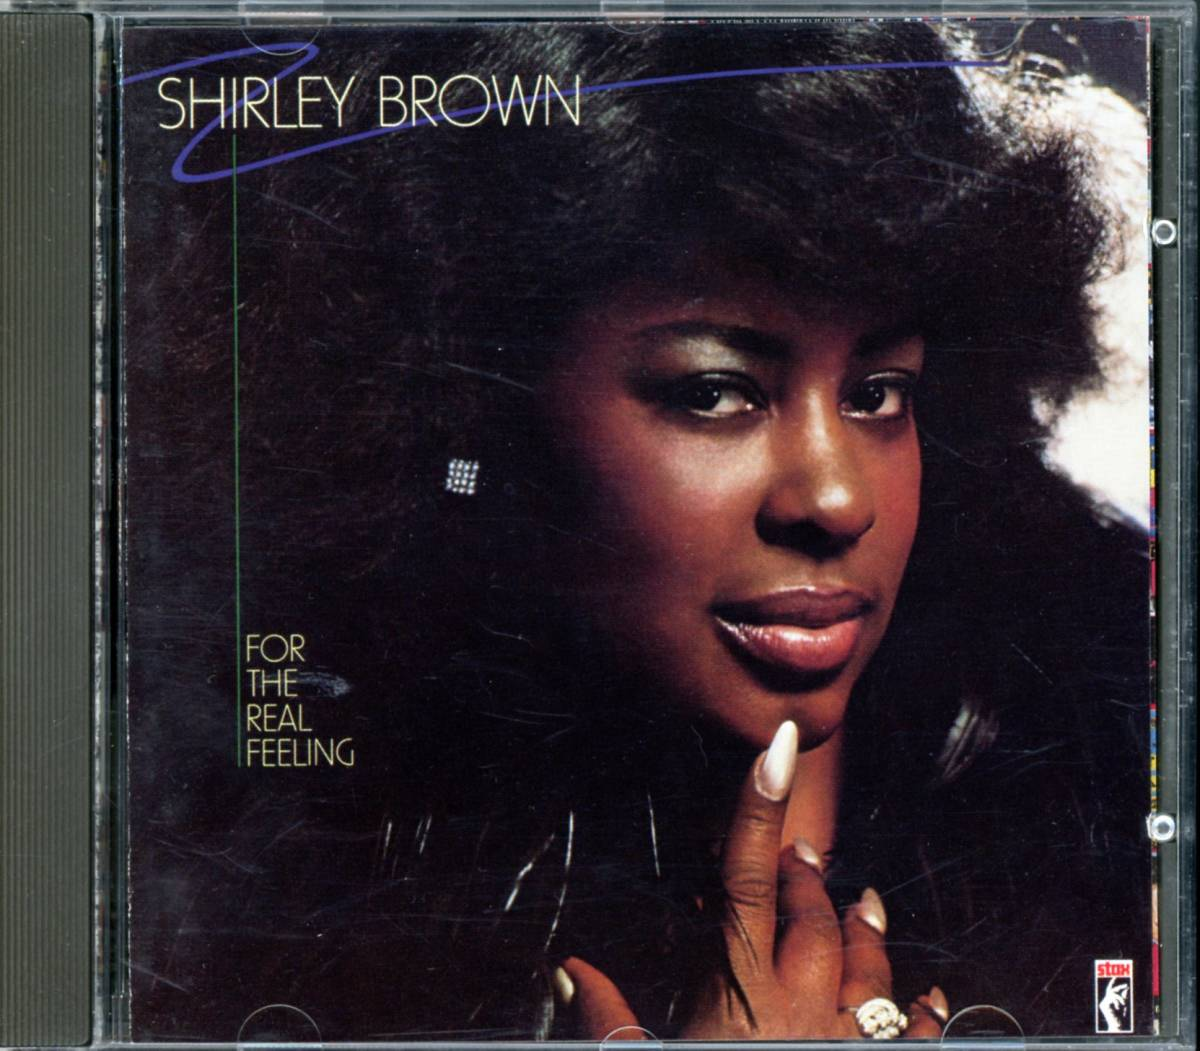 ソウル■SHIRLEY BROWN / For The Real Feeling (1979) 廃盤 David Porter制作 Stax